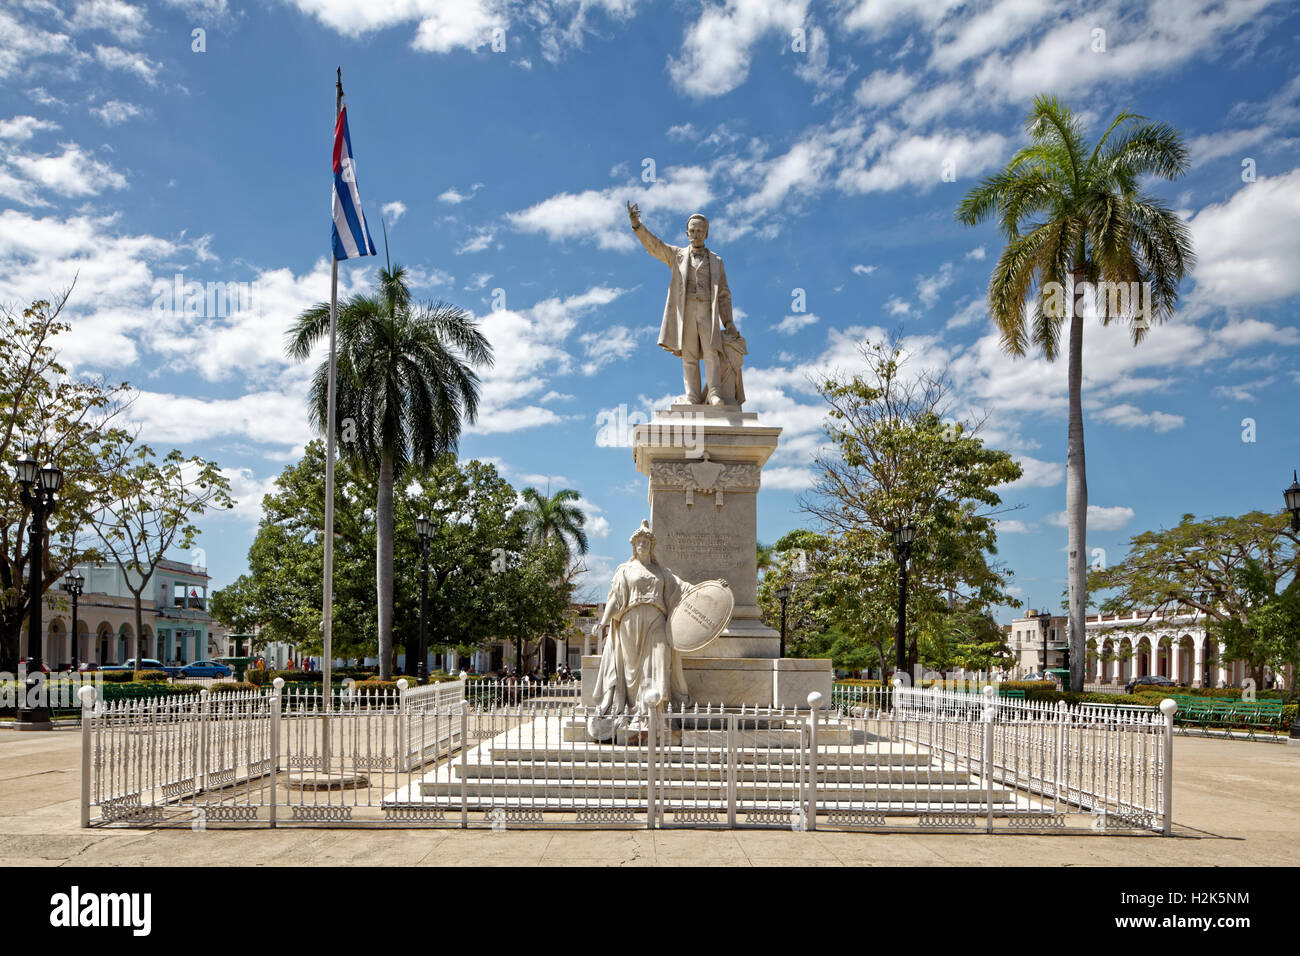 Monument, poet, national hero and freedom fighter Jose Marti, Parque Jose Marti, historic city centre, Cienfuegos - Stock Image